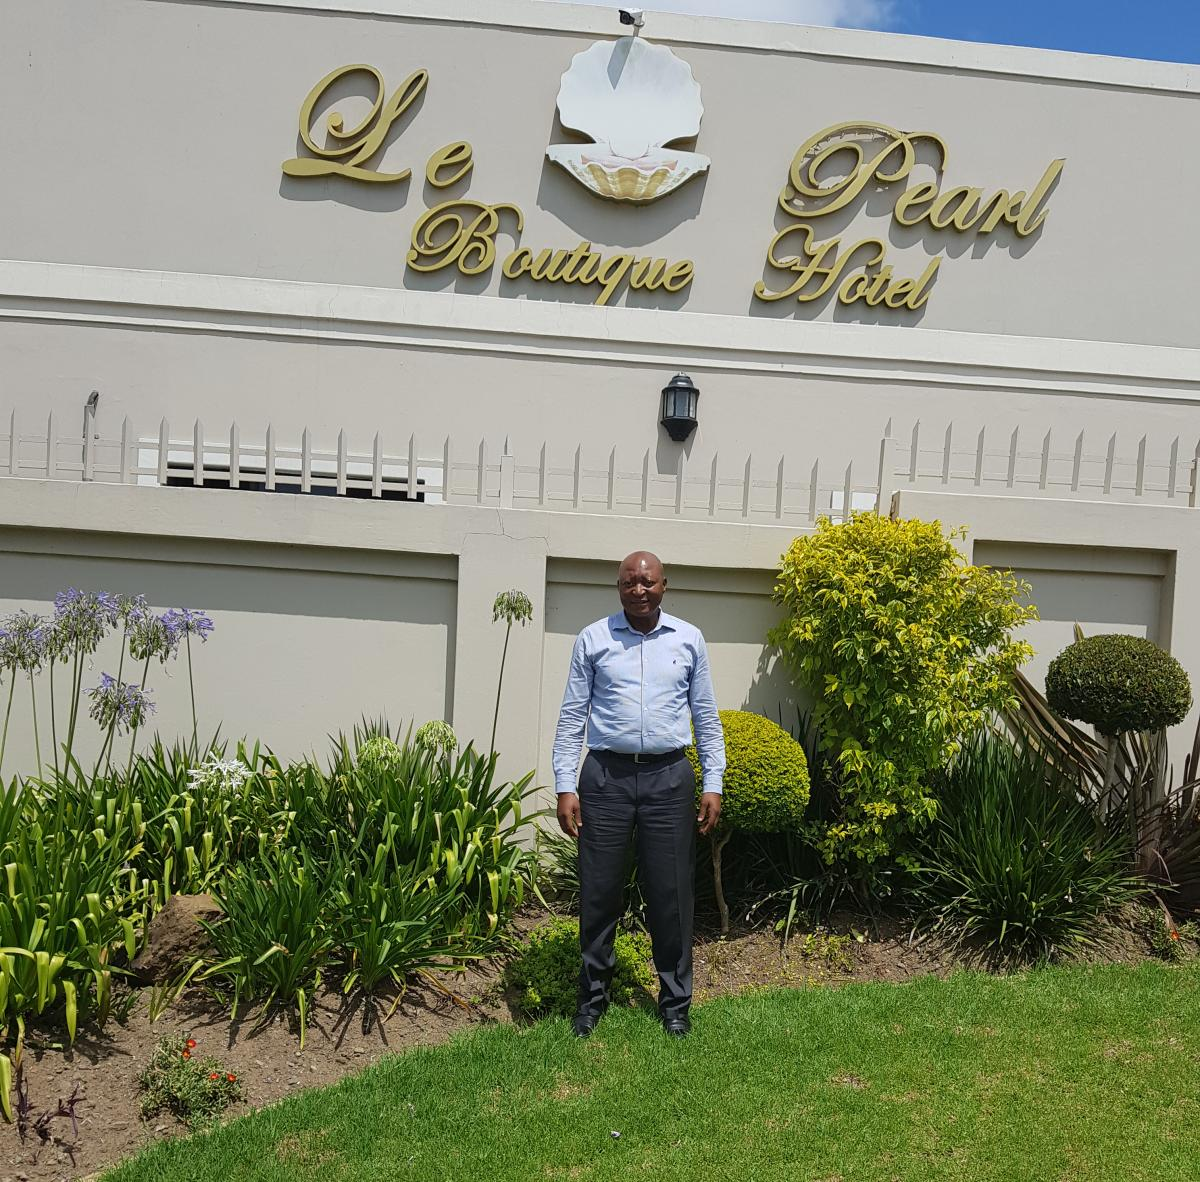 Mkhululi Kubukeli is making waves in the hospitality industry in Mthatha, by running a luxurious hotel and creating jobs in his community.